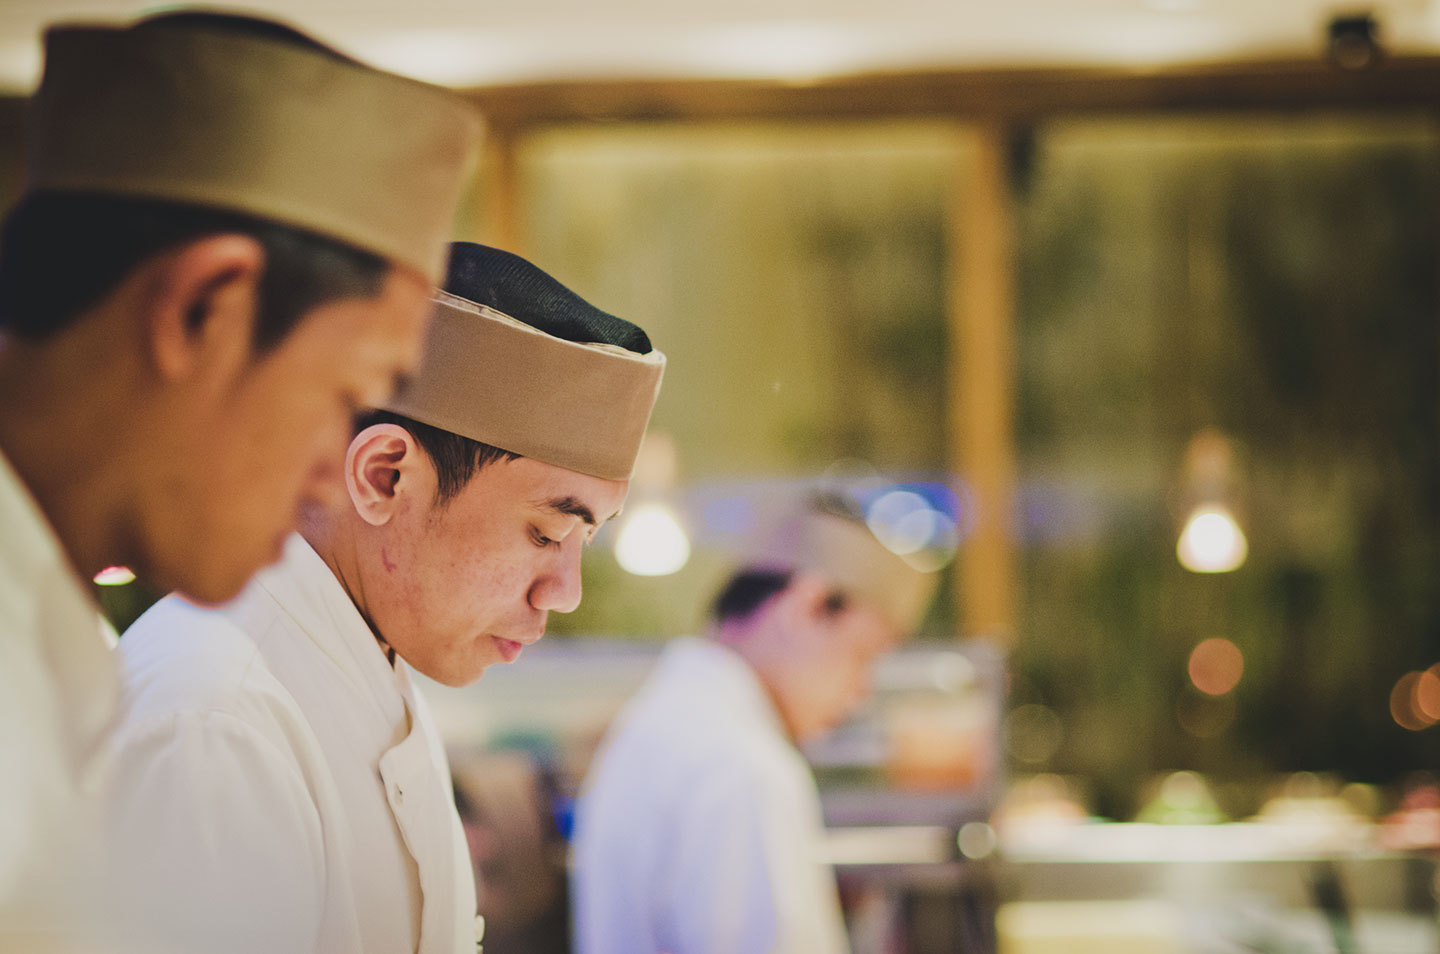 Photograph Chef by Bady qb on 500px